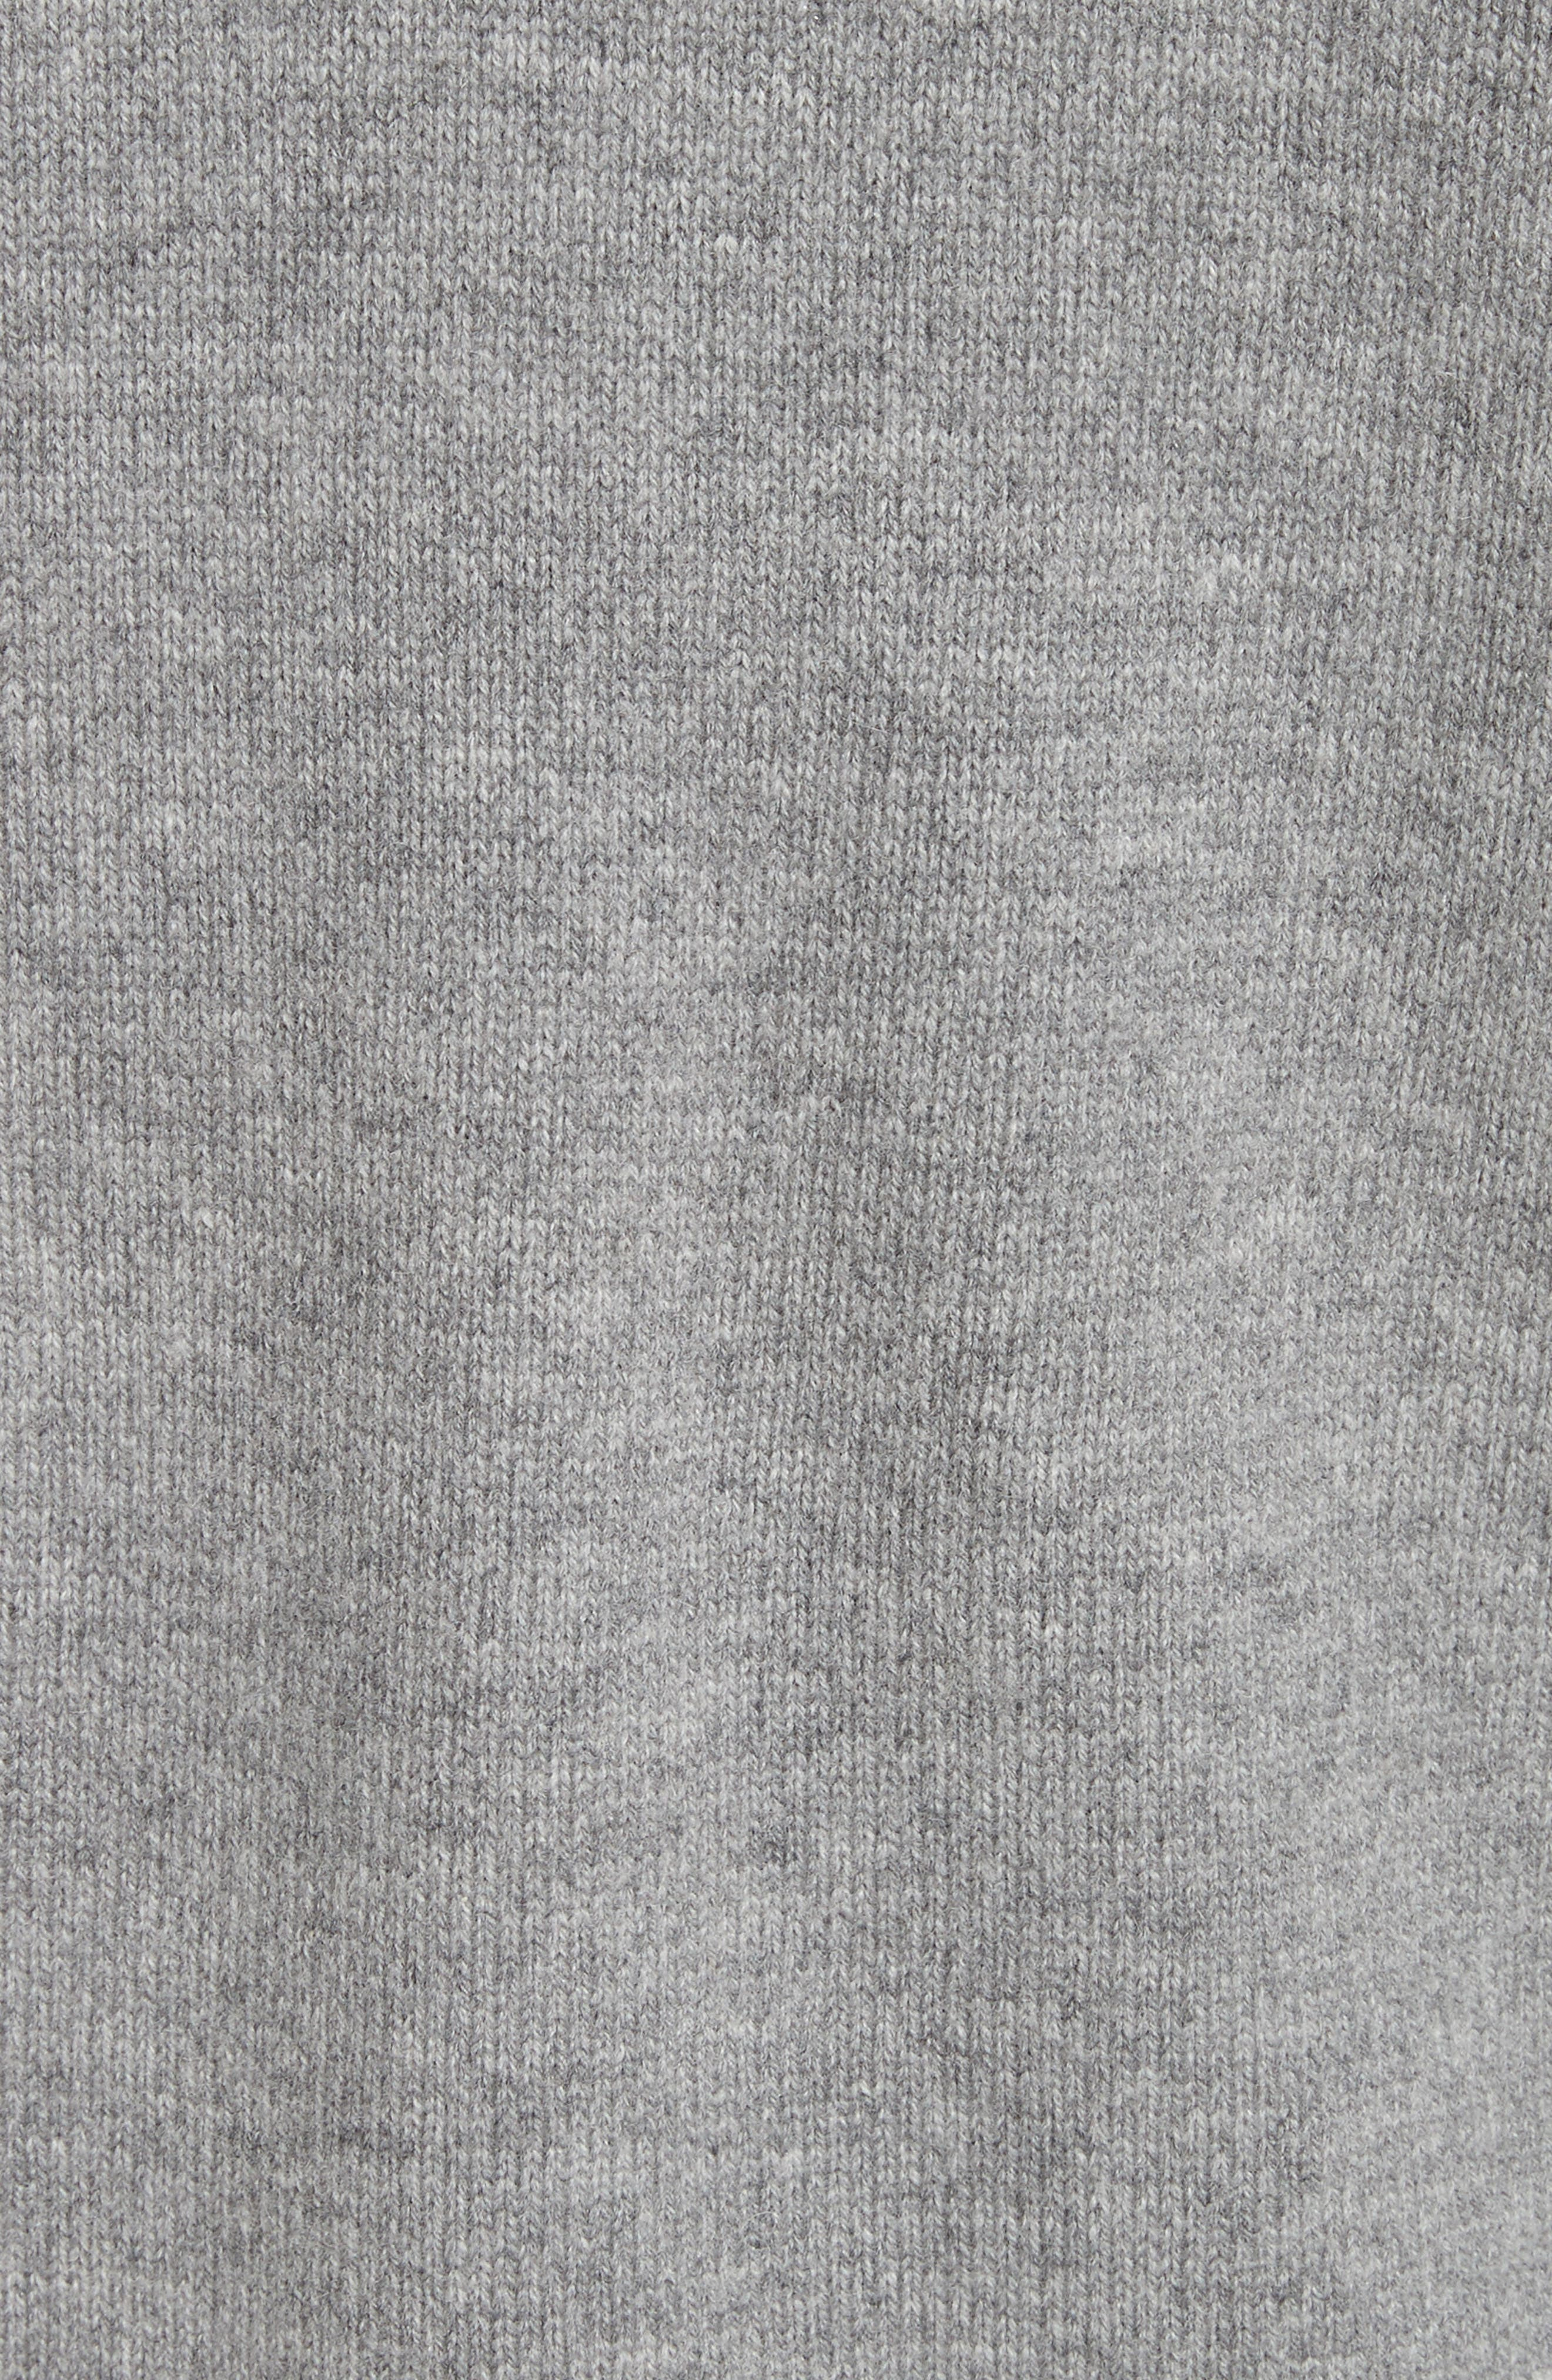 Beaded Wool & Cashmere Sweater,                             Alternate thumbnail 5, color,                             020